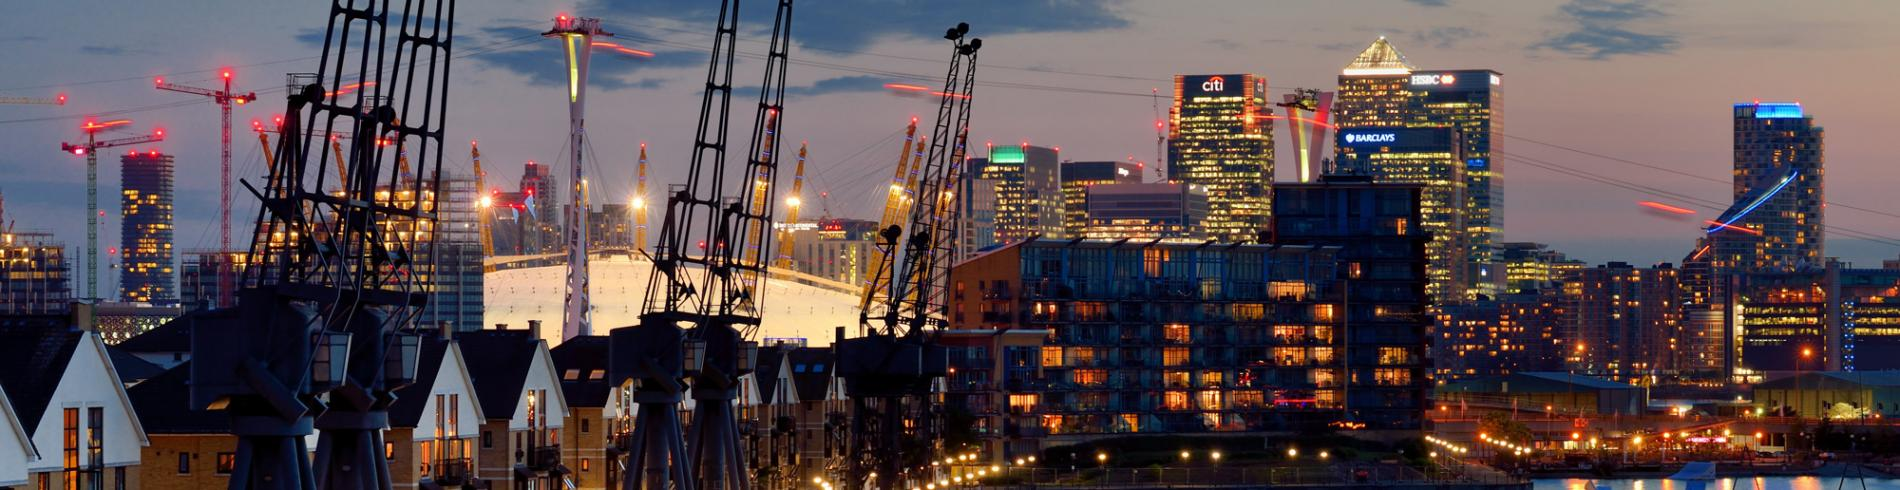 Dockland's views in London